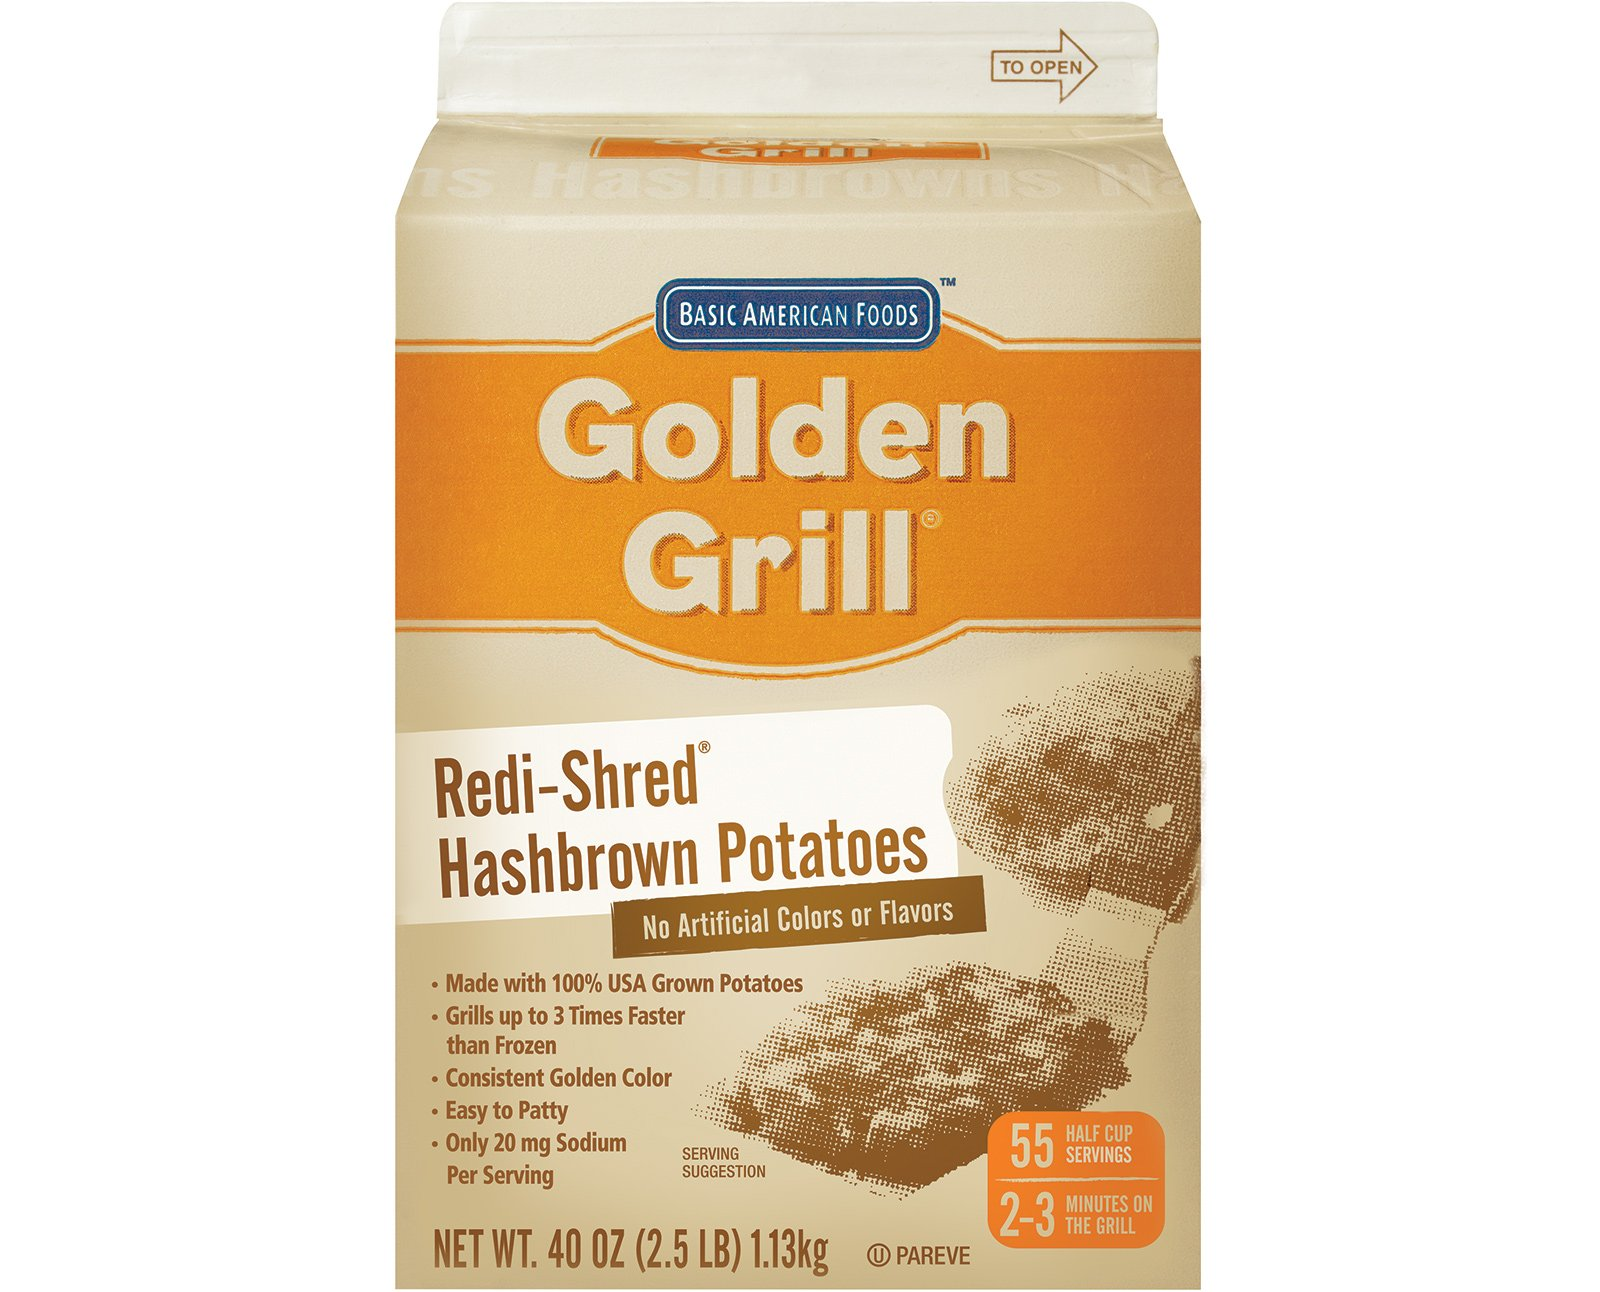 Golden Grill, Redi-Shred Hashbrown Potatoes, No Salt Added Low Sodium, 2.5 lbs. (6 Count)